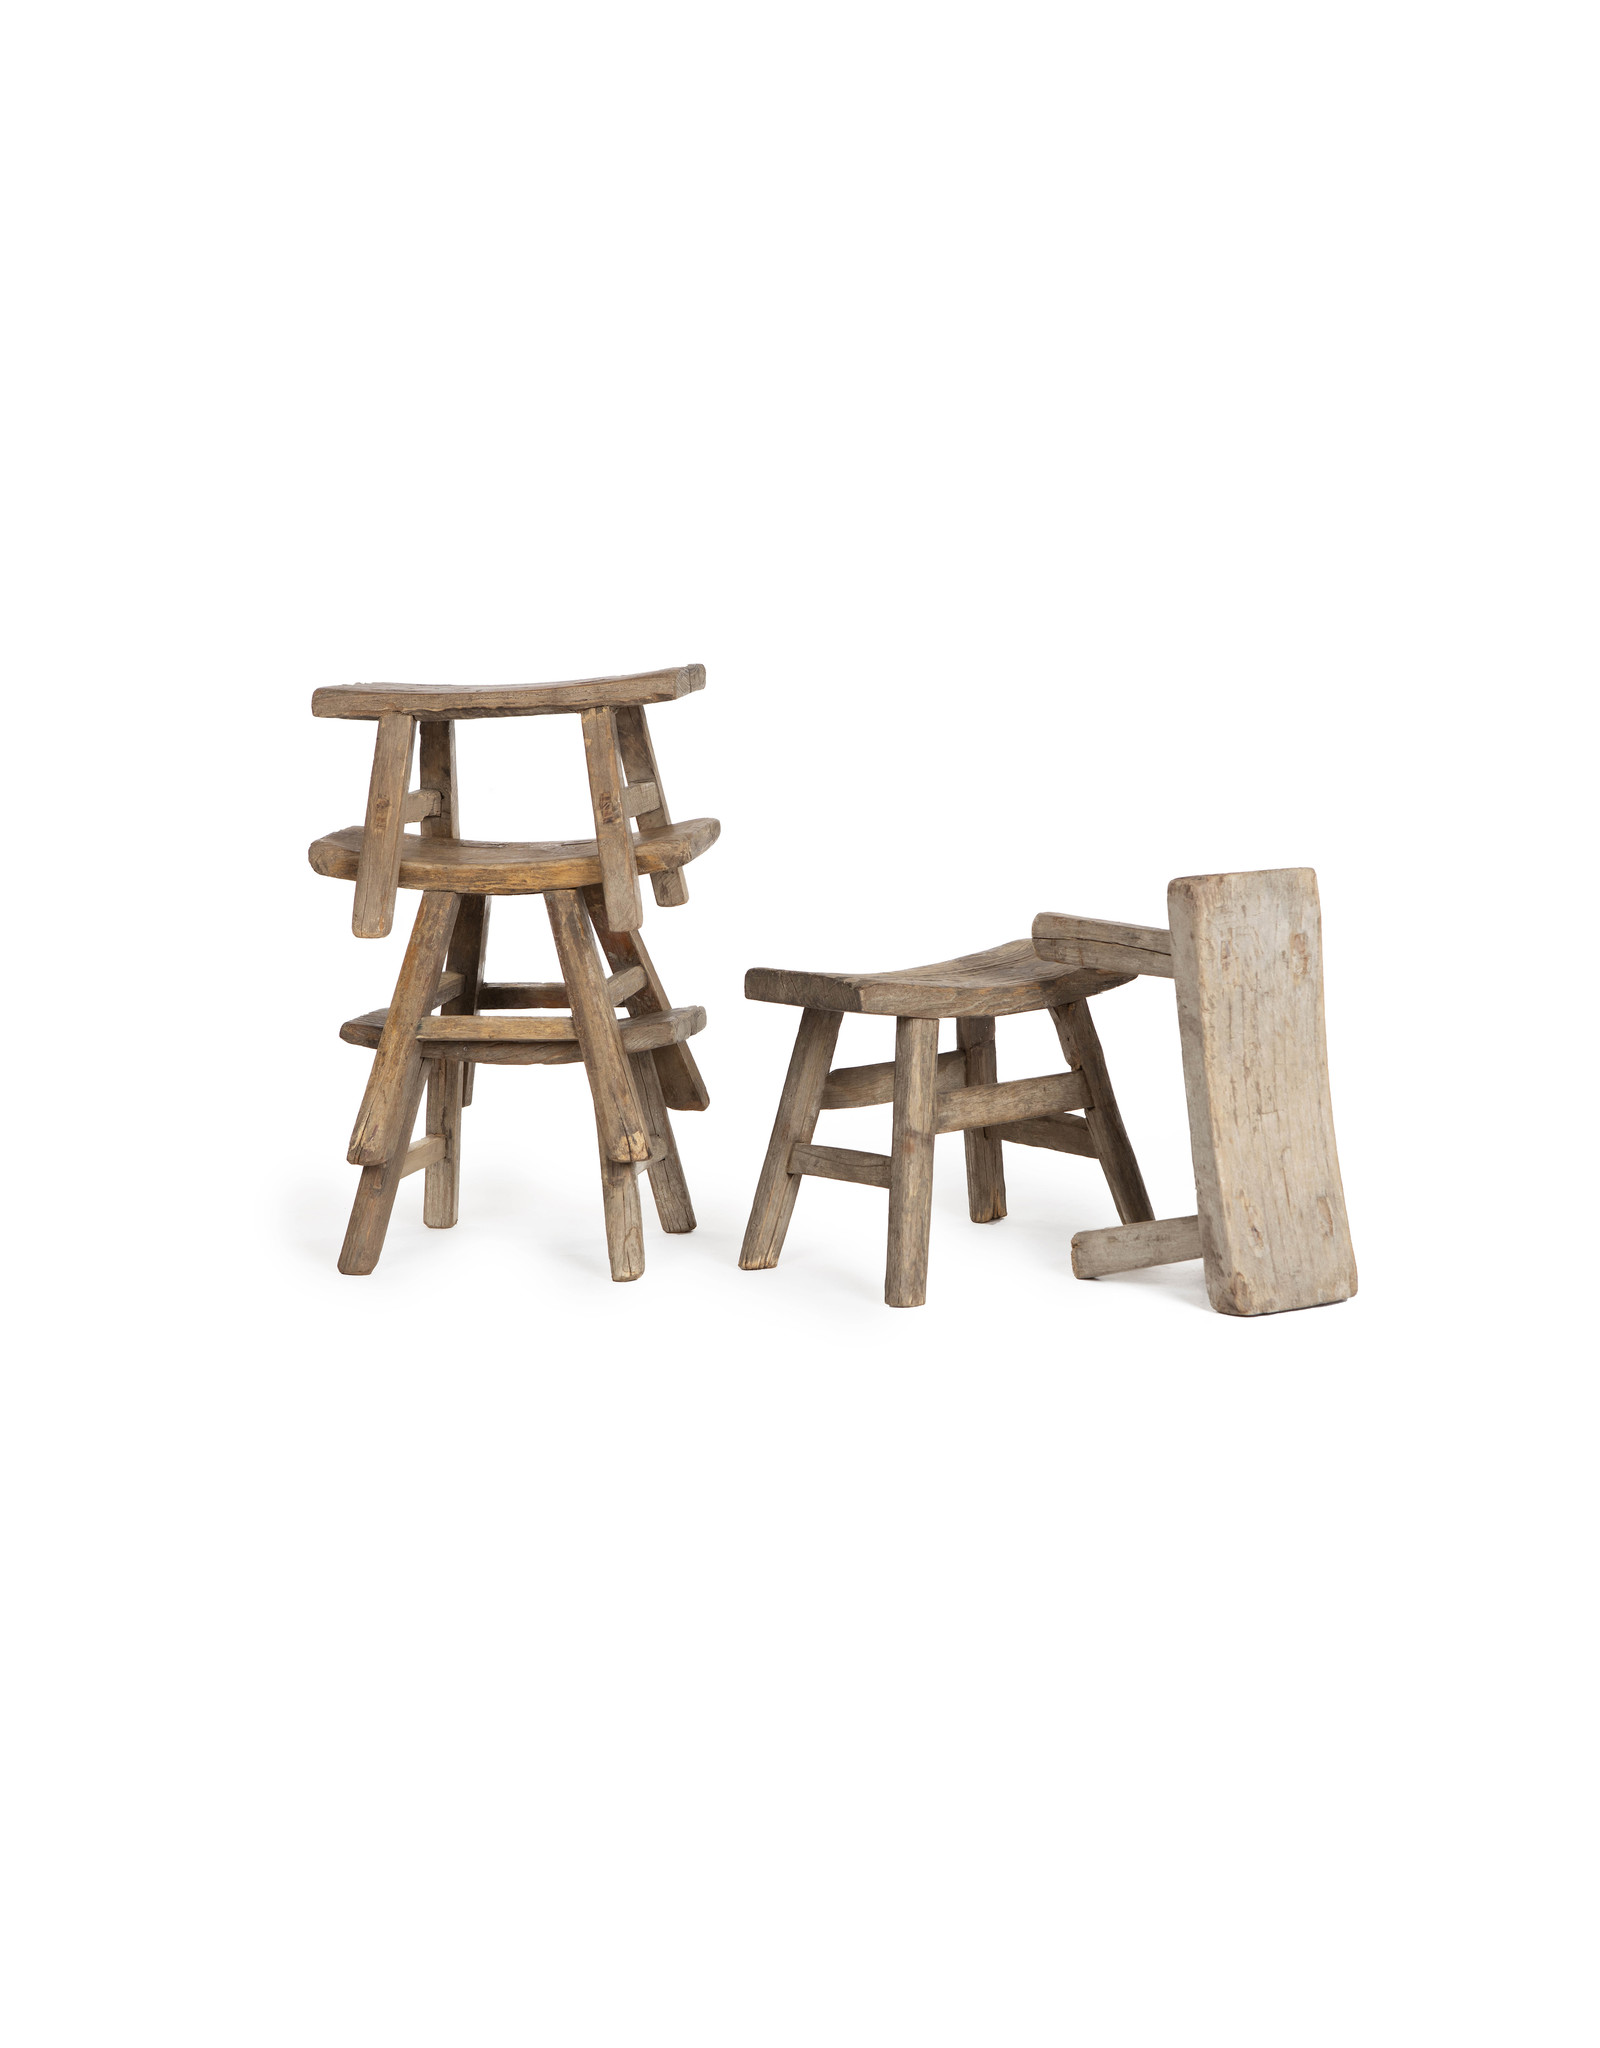 Chinese antique small wooden saddle  stools